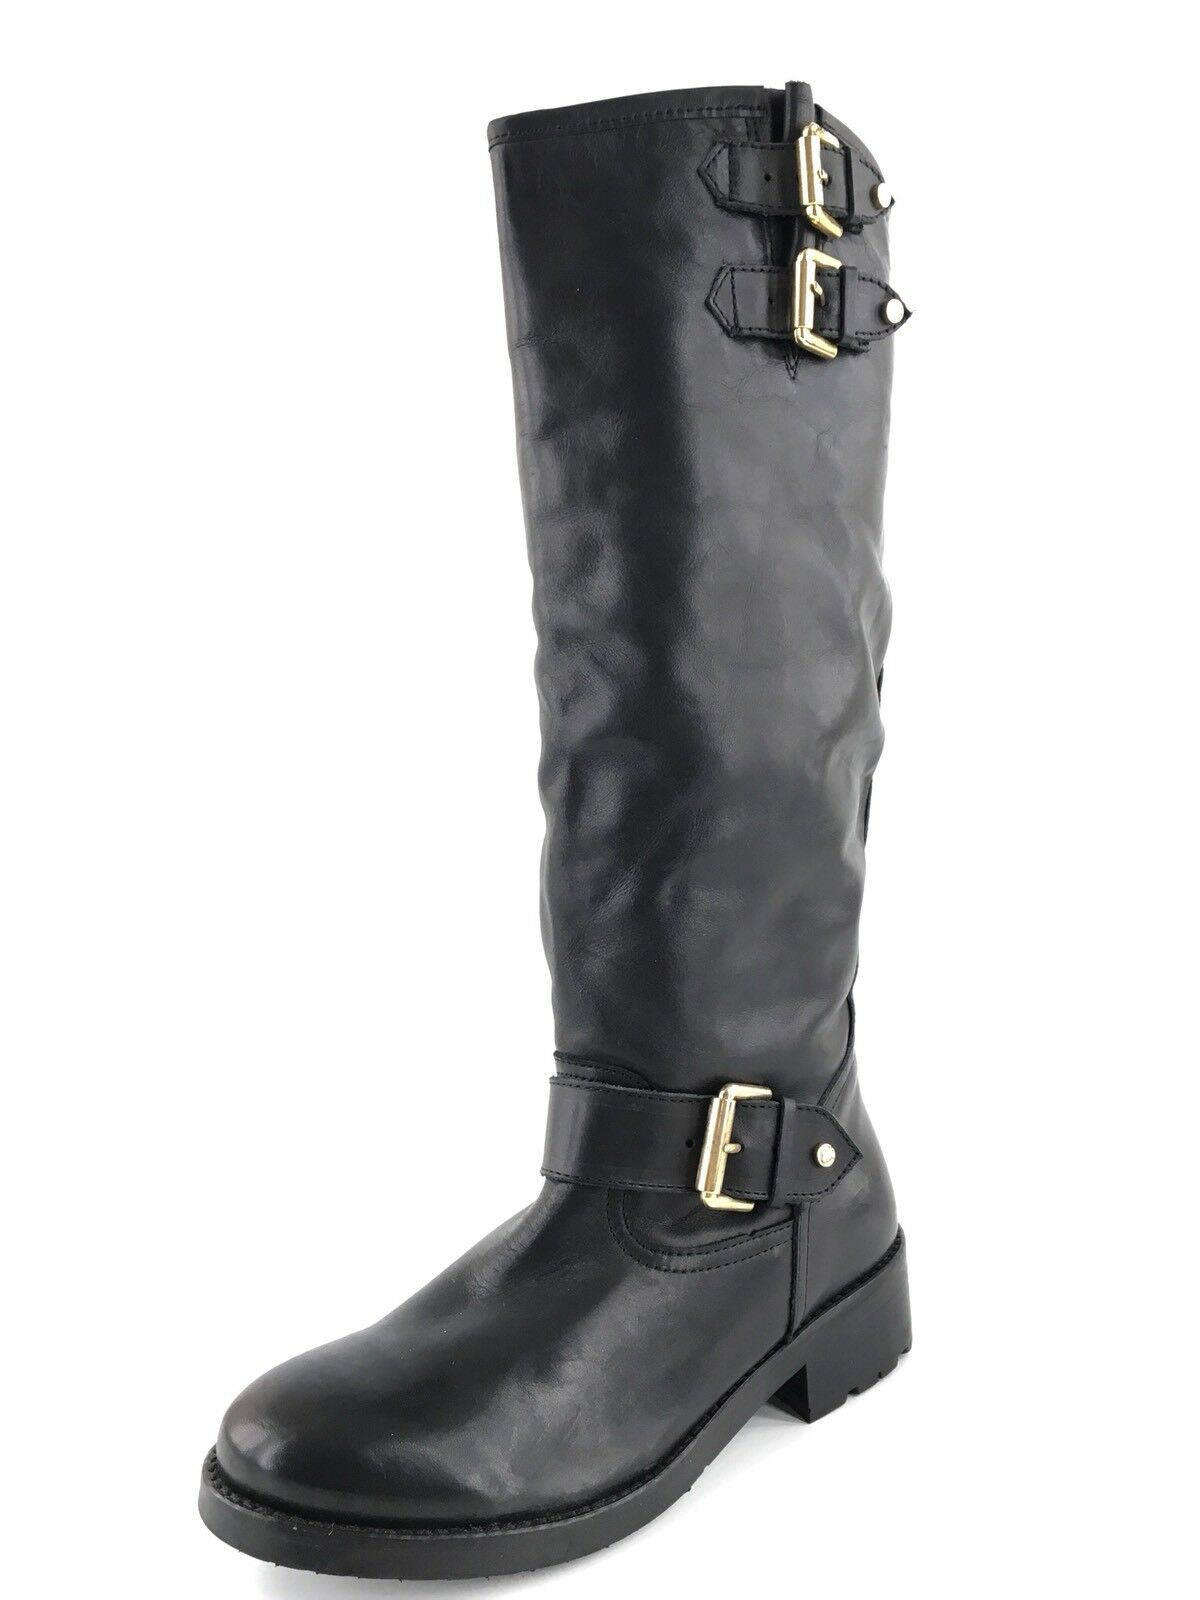 New Kurt Geiger London Black Leather Knee High Boots Women's Size 38 M*